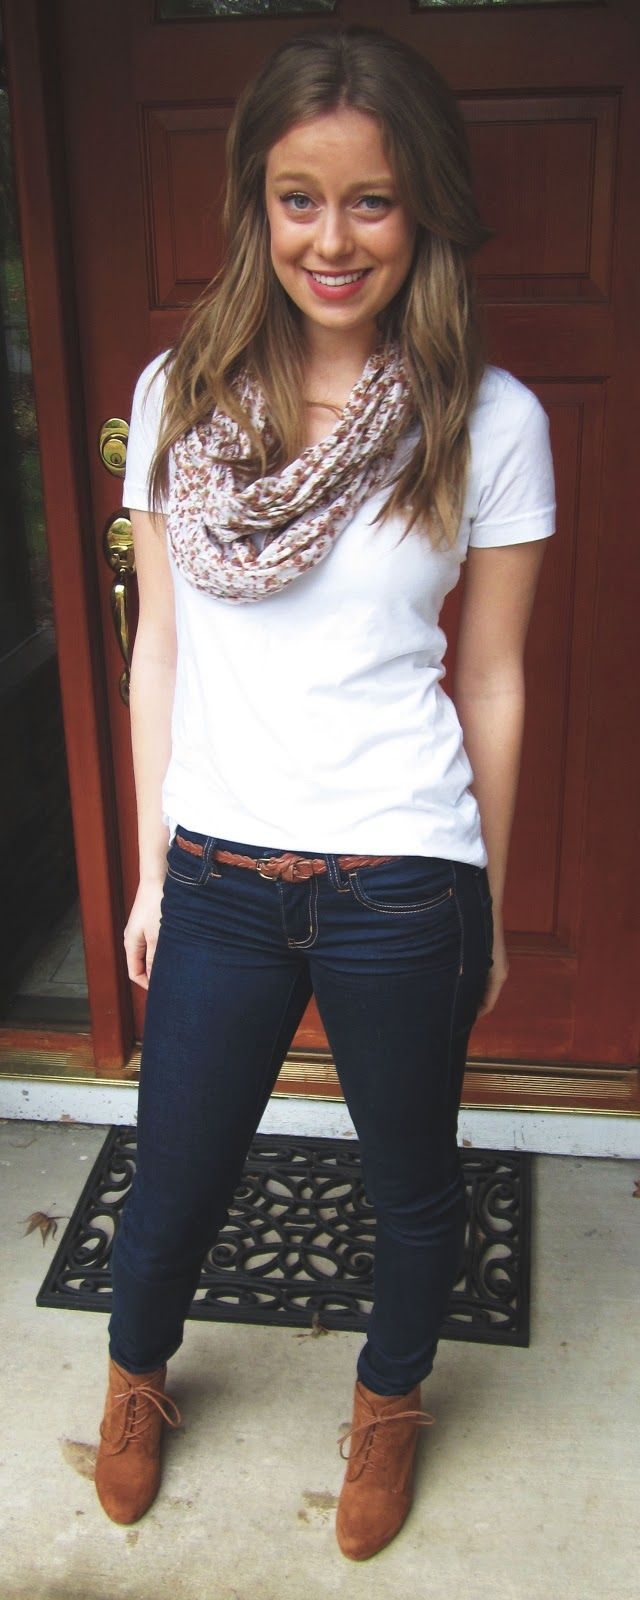 Comfy outfit white tee slightly tucked in, floral scarf, skinny jeans,  wedge